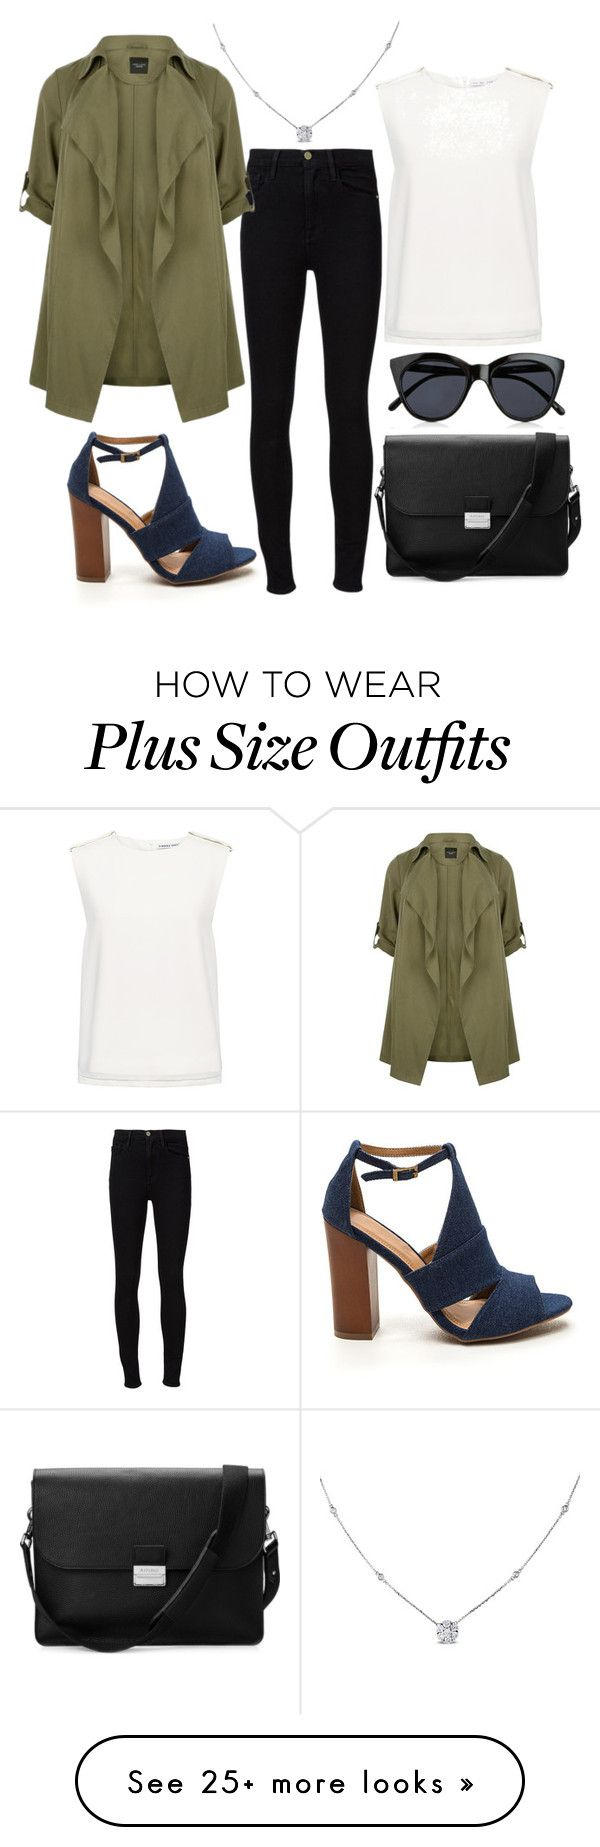 """""""Untitled #1108"""" by sky-colette on Polyvore featuring Ice, Frame Denim, Finders Keepers, Le Specs and Aspinal of London"""